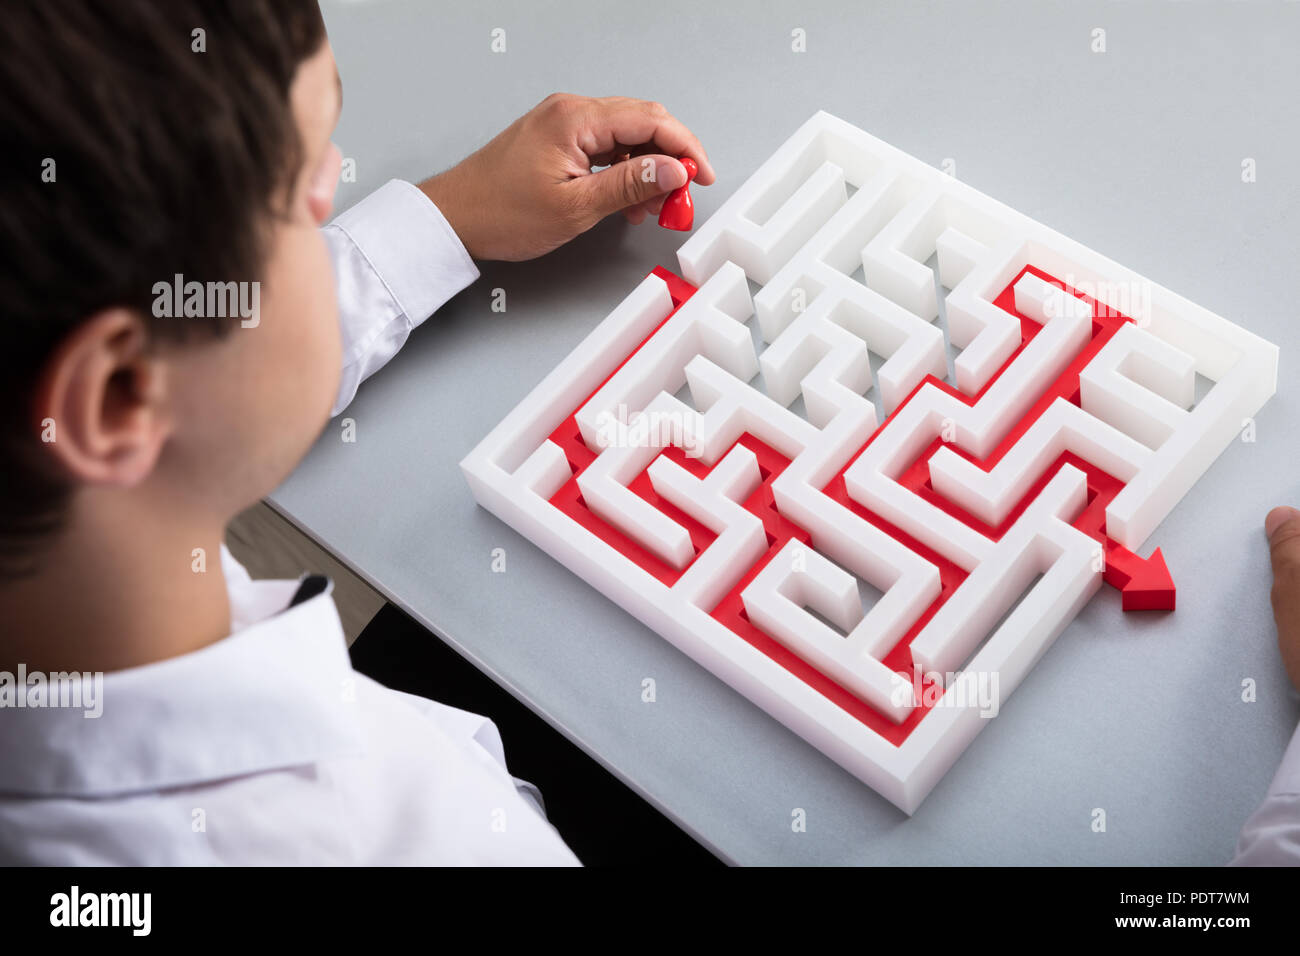 Elevated view of businessman solving maze on desk - Stock Image